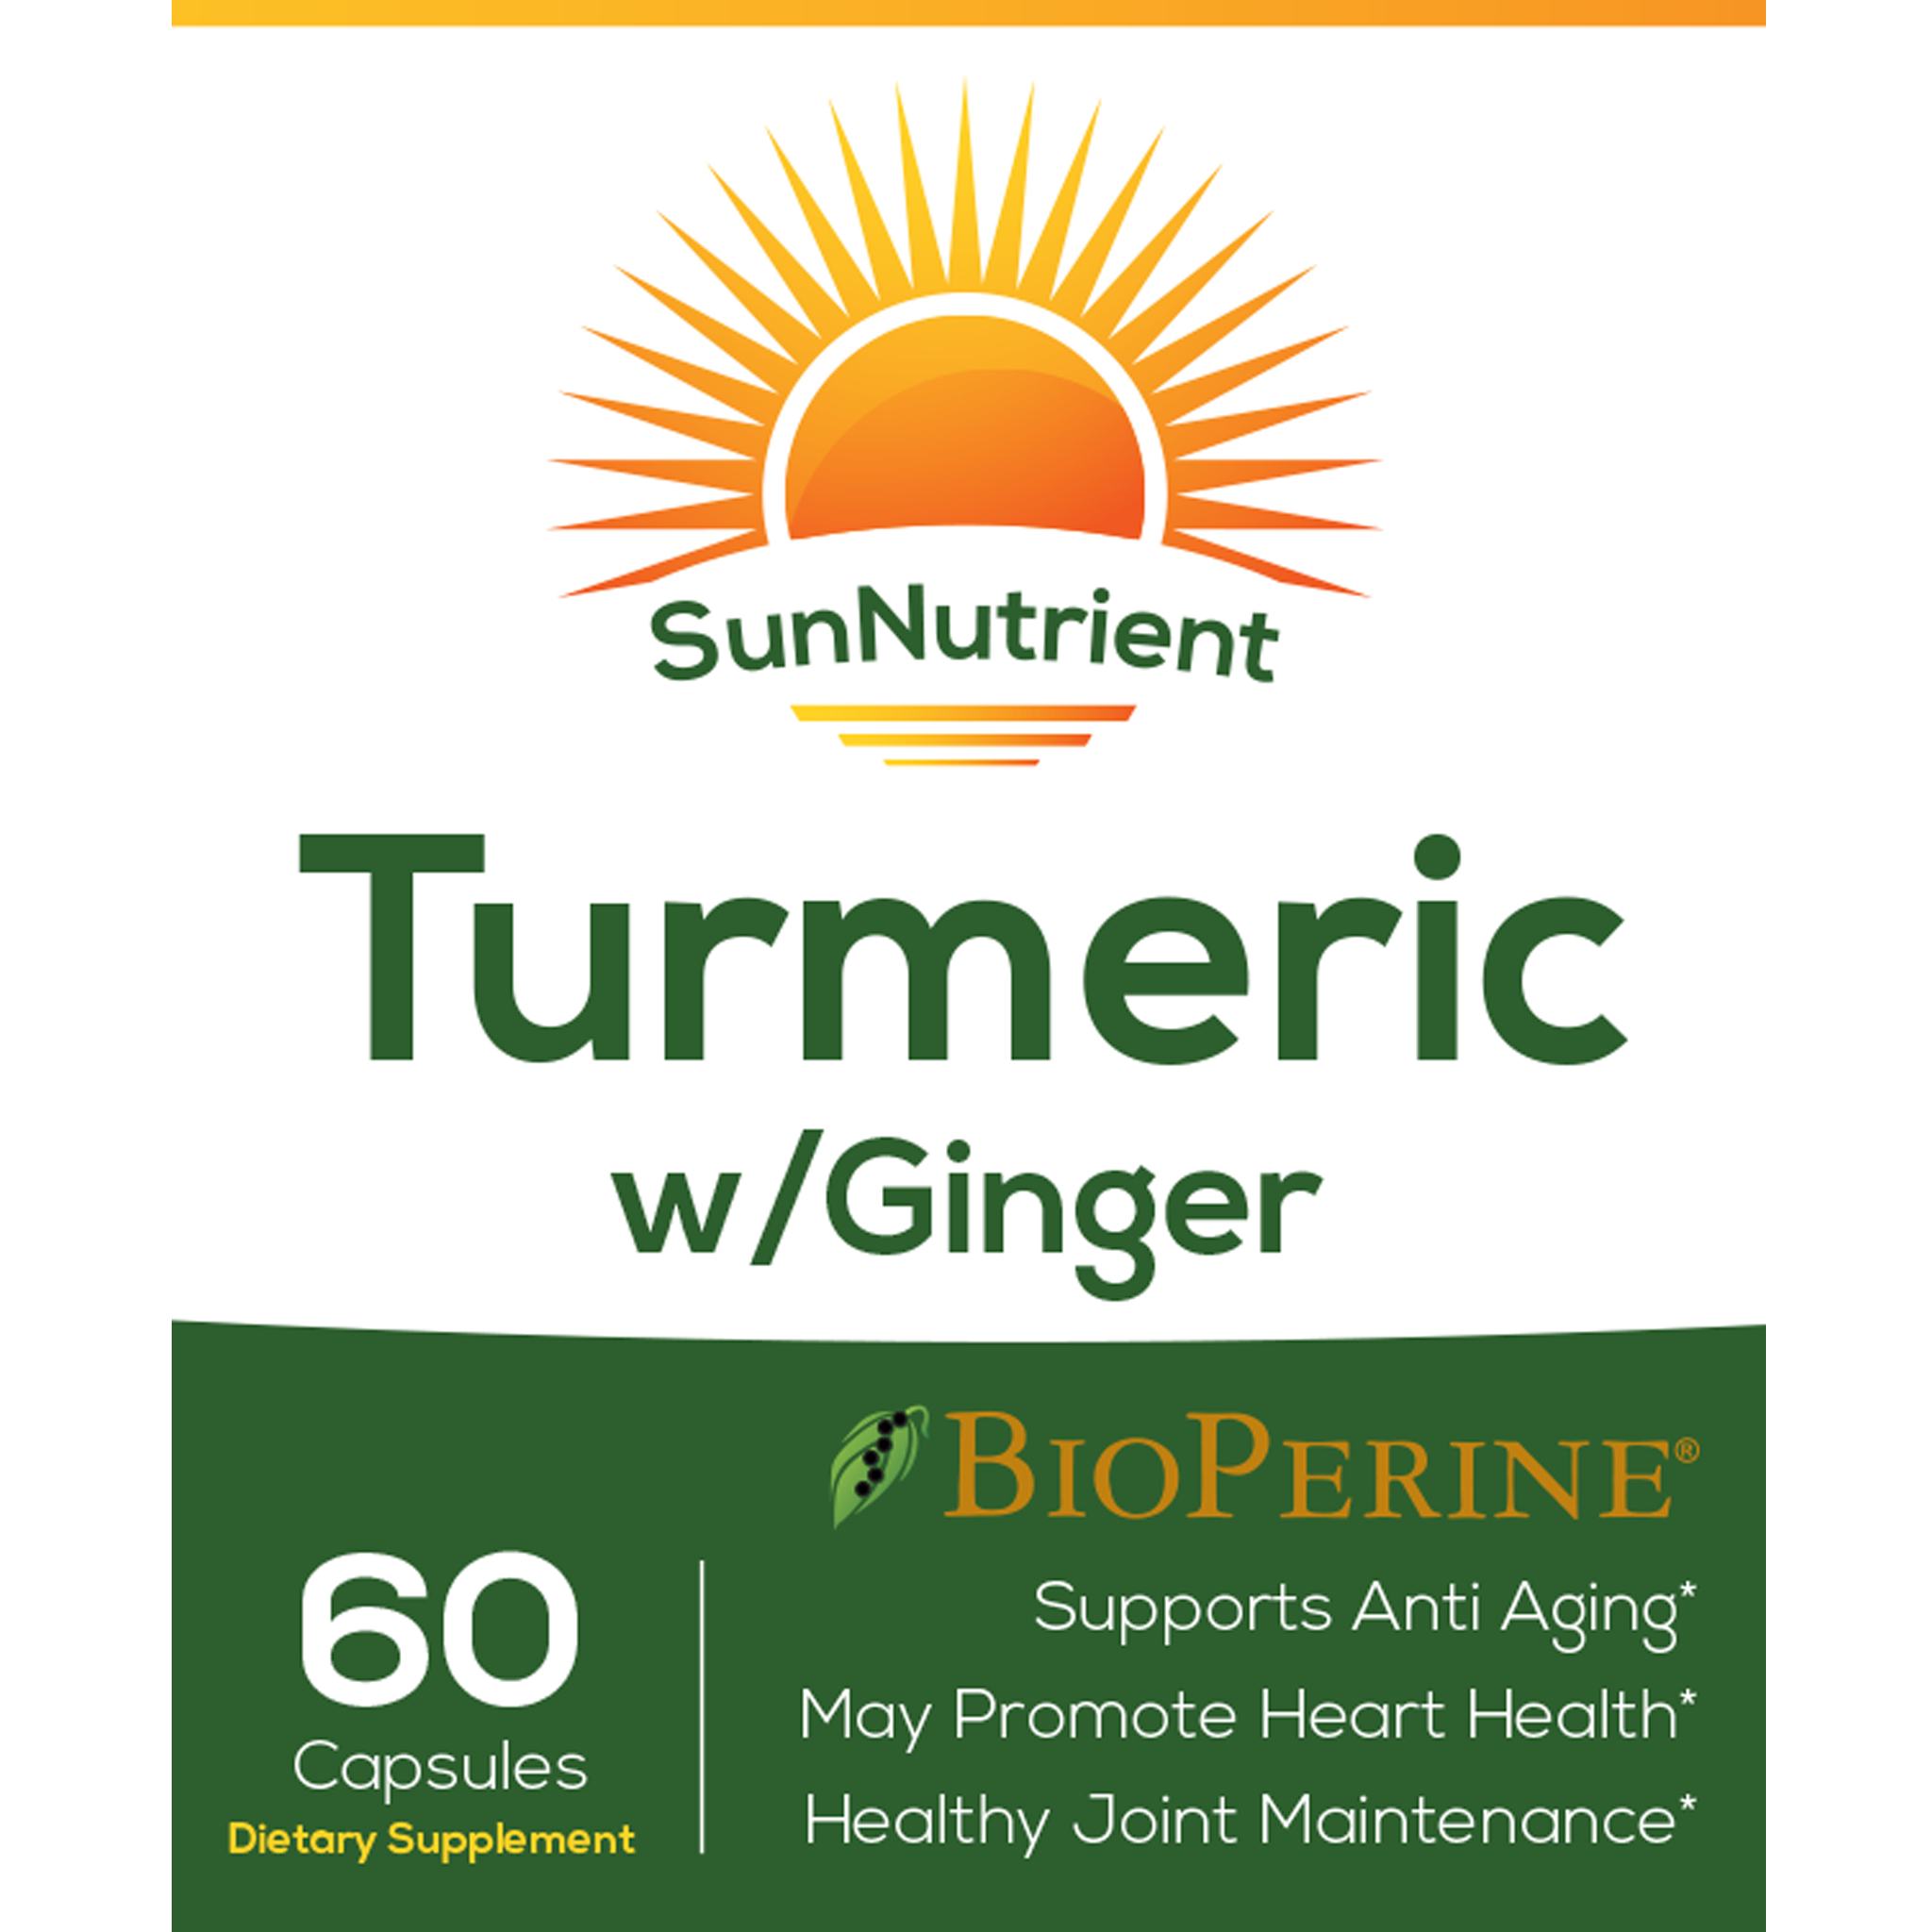 SunNutrient tumeric with ginger supplement Front Label